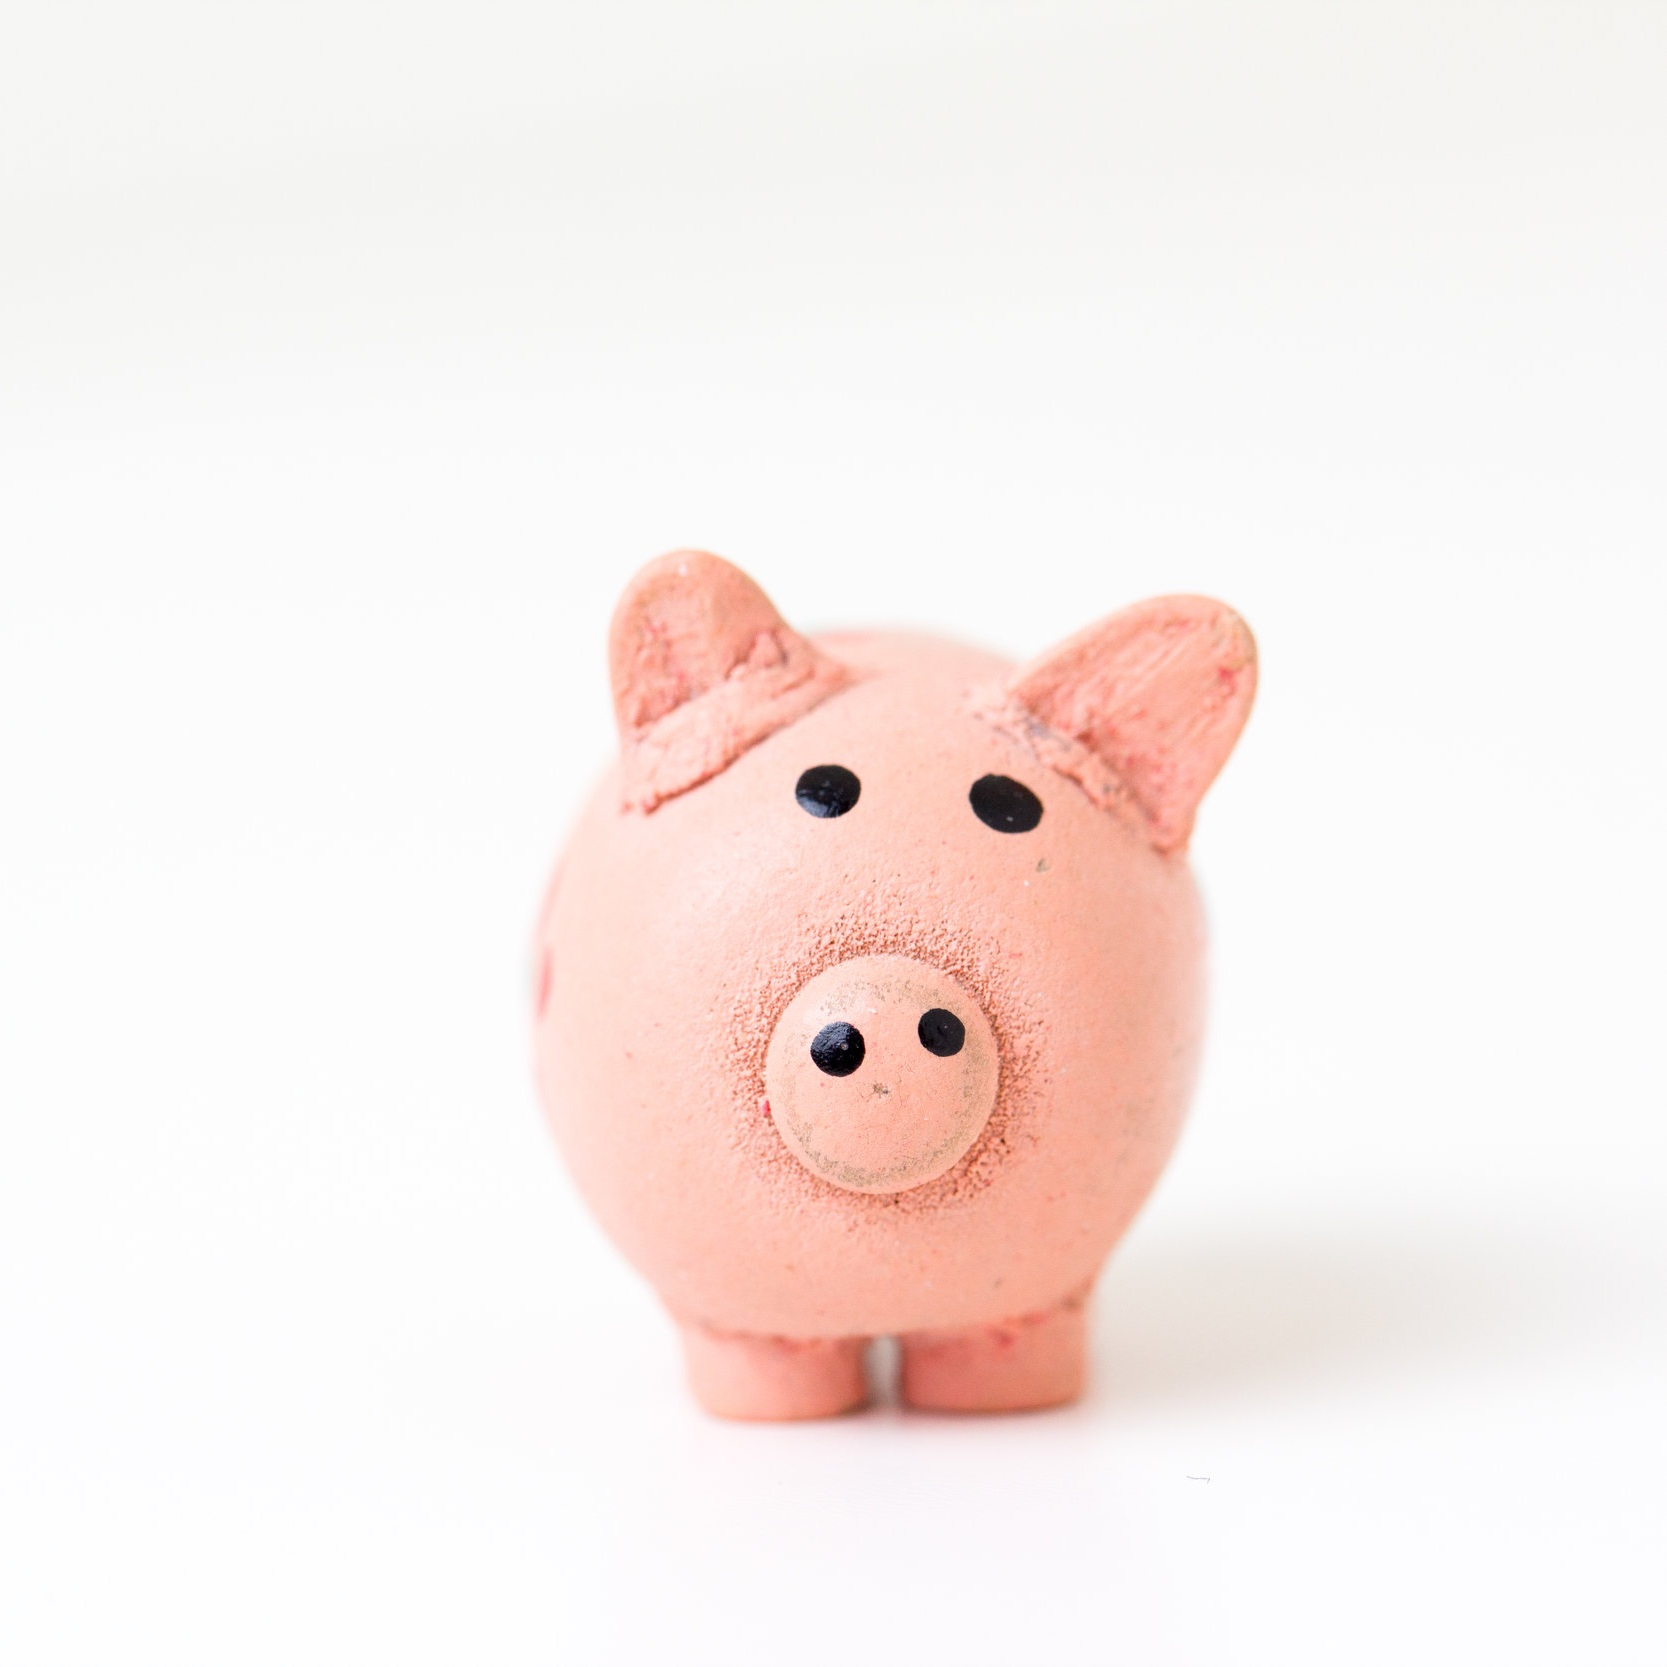 Cost effective - We are fully transparent with our costing structure through the providing of quotations with a breakdown of the time required for each area of work performed. Our rates are also highly competitive and meet that of the Legal Aid Agency.